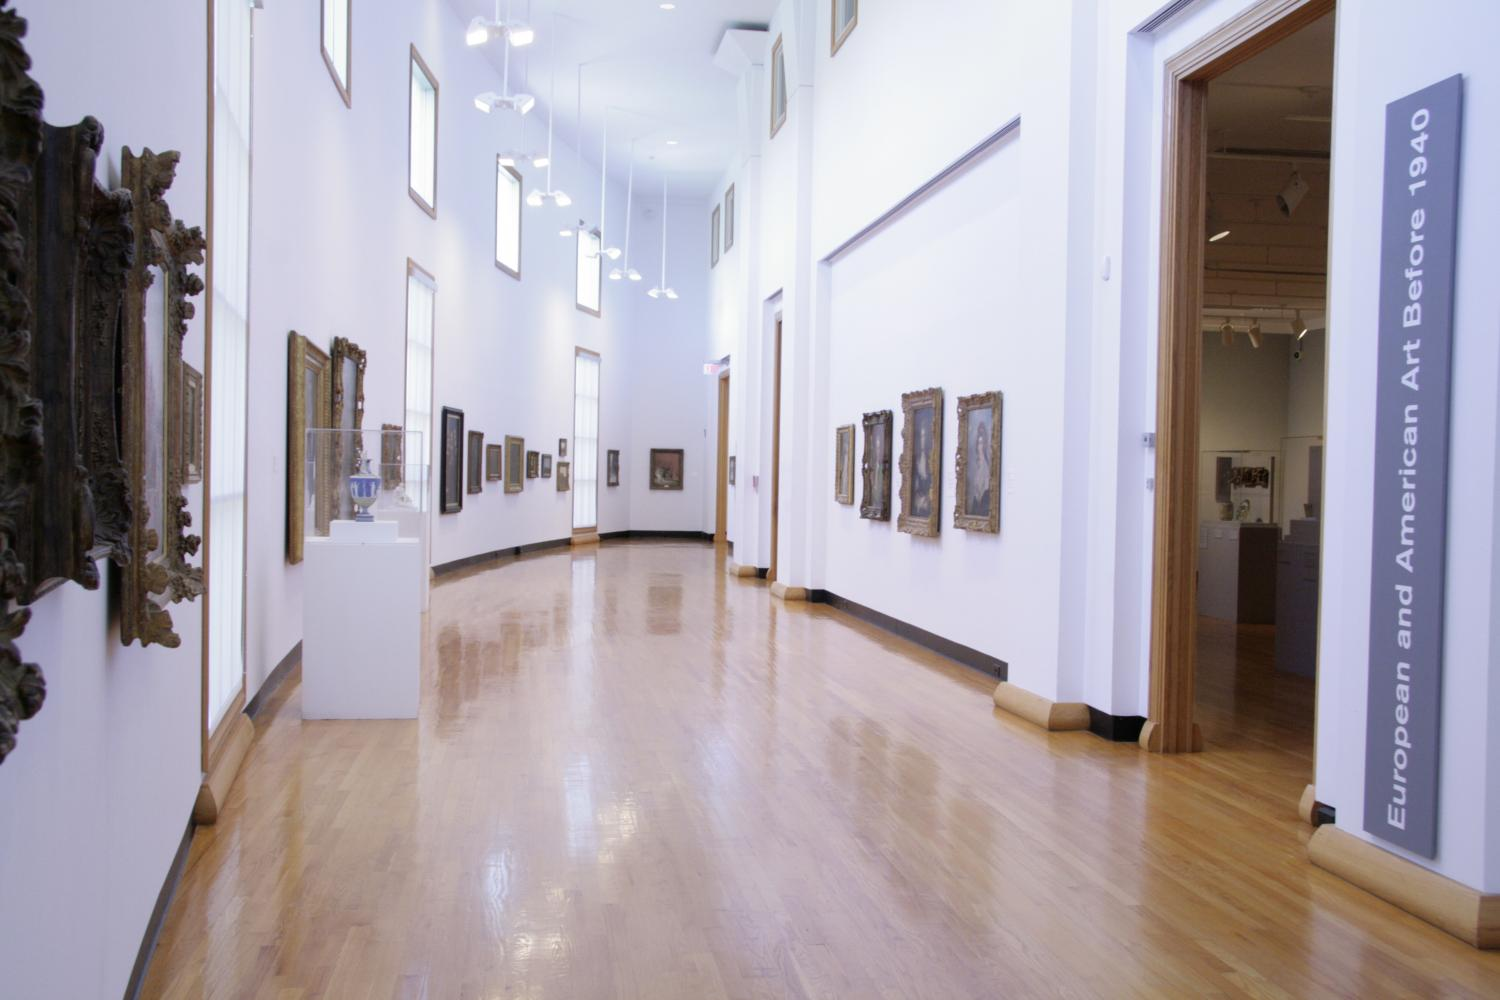 Bow Gallery at Krannert Art Museum, 2013.